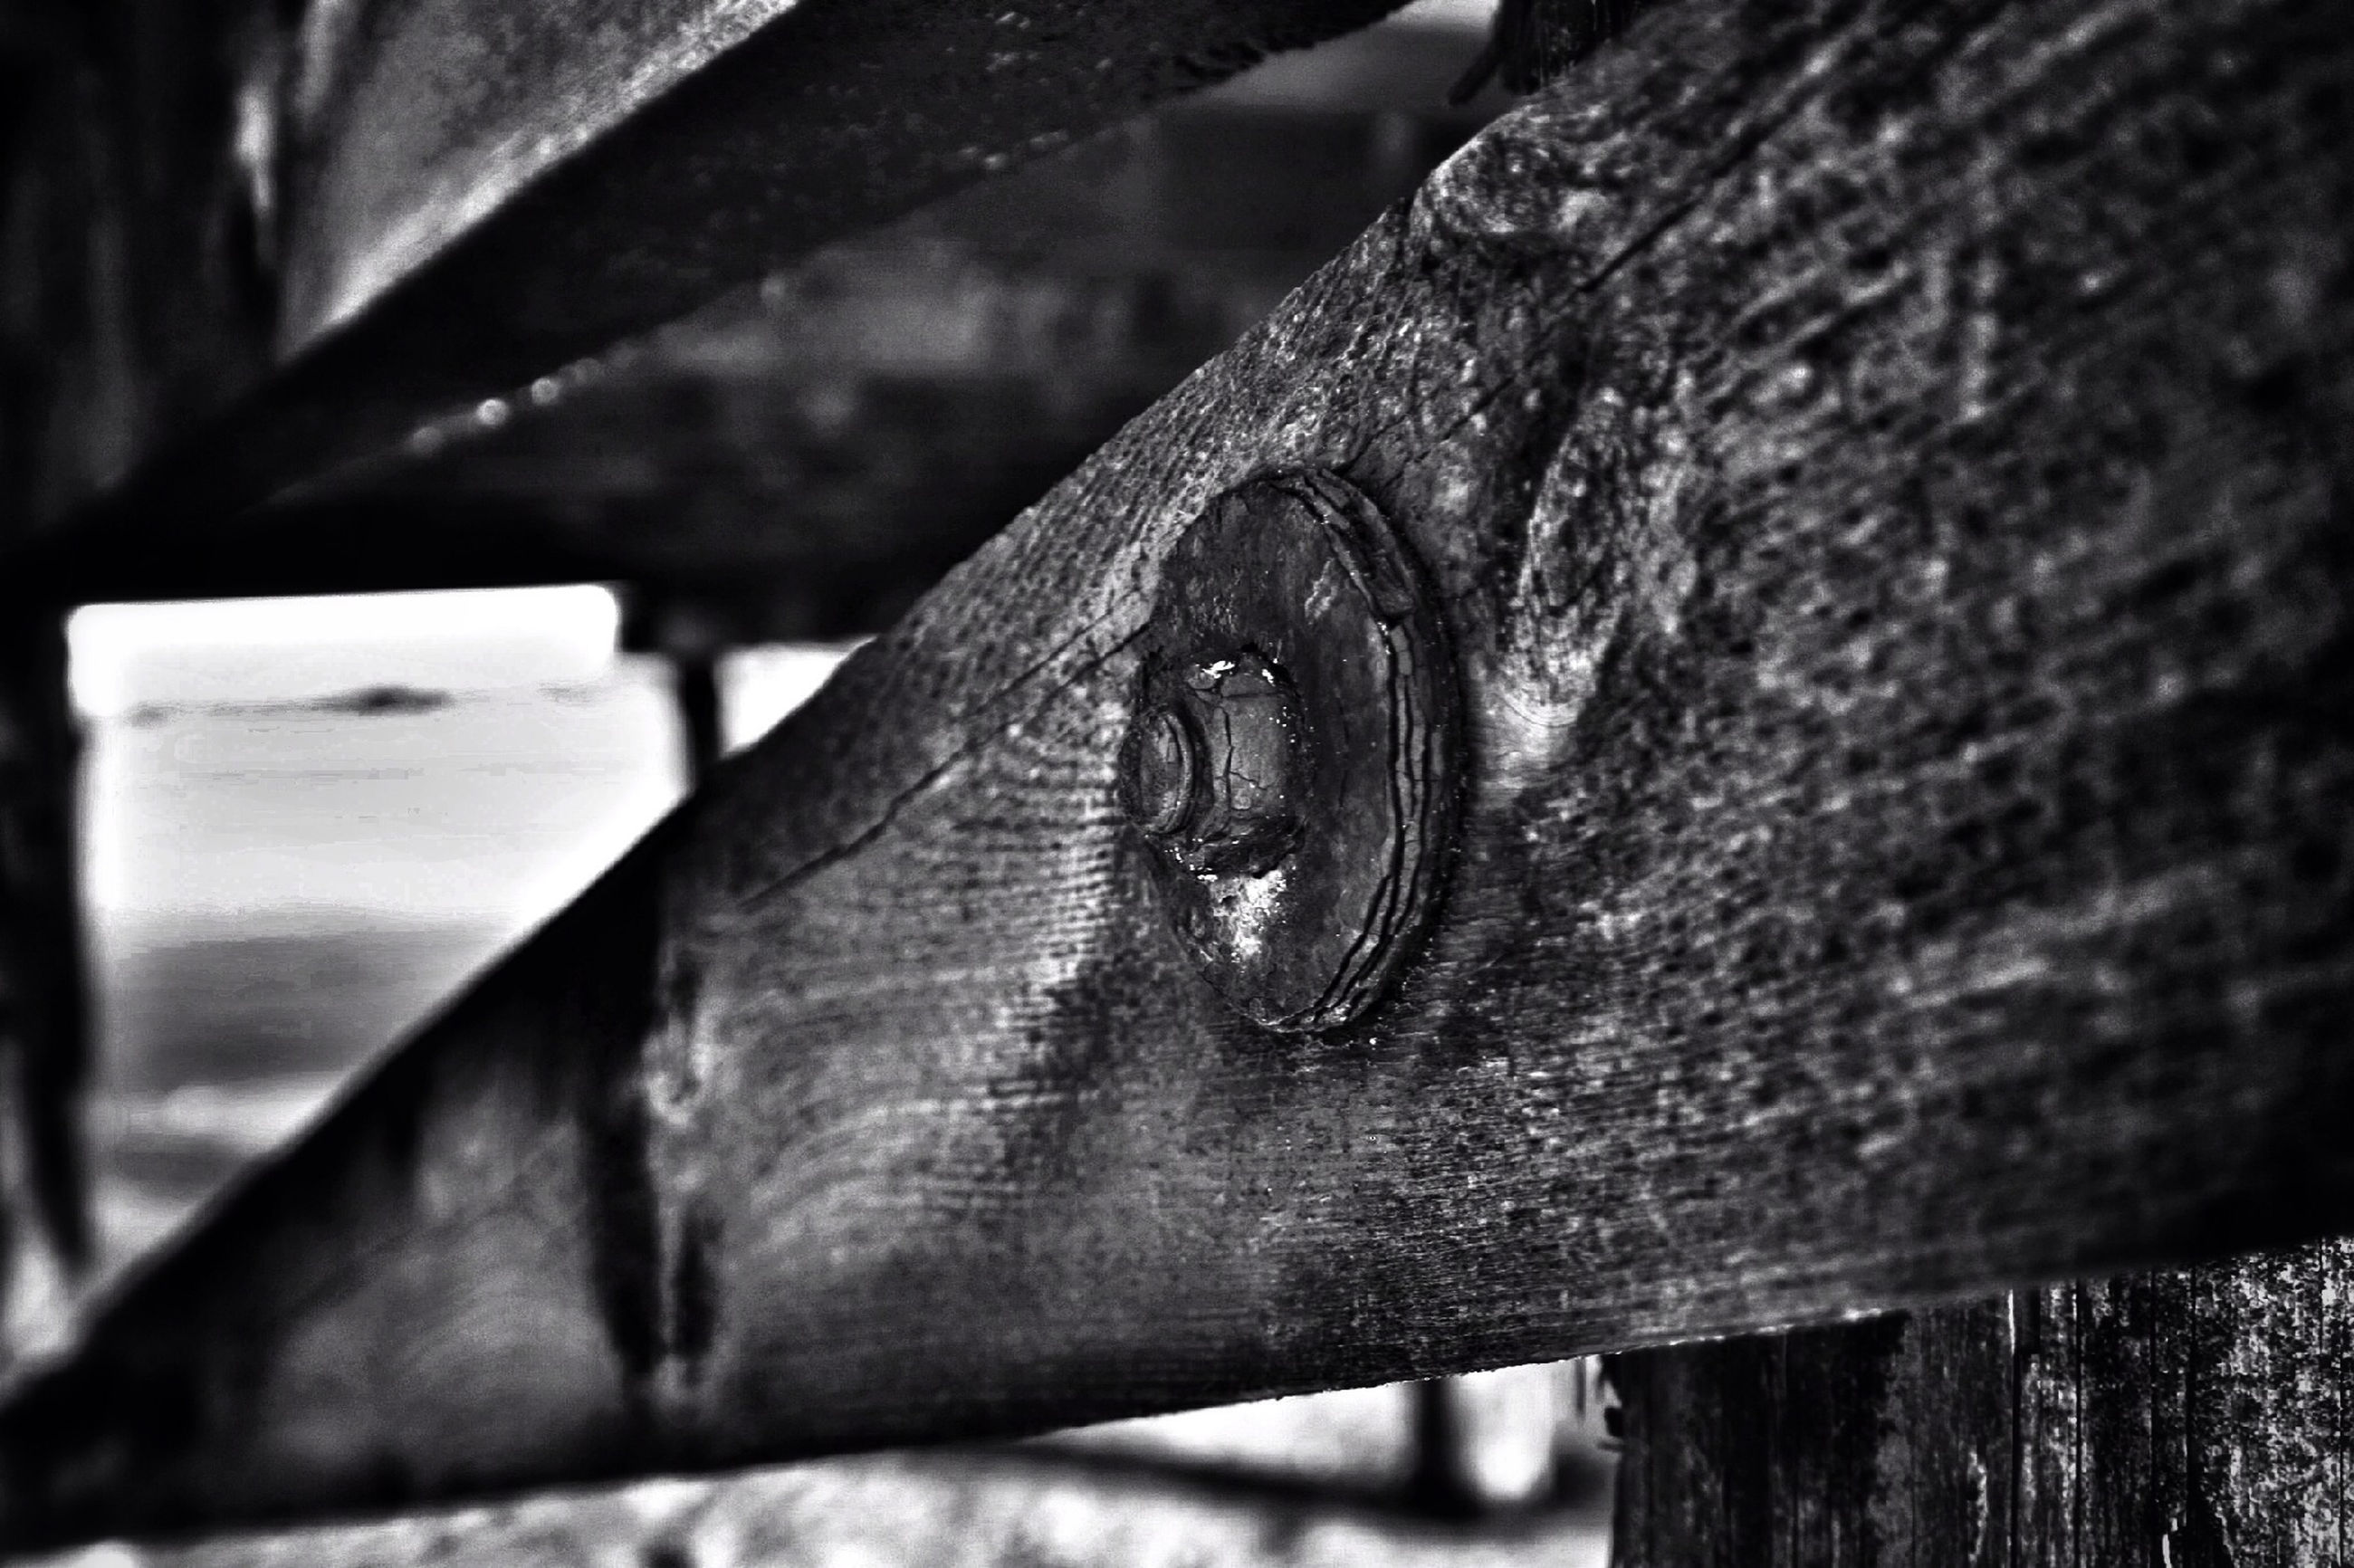 close-up, focus on foreground, part of, rusty, selective focus, wood - material, old, metal, textured, weathered, cropped, detail, wooden, wood, extreme close-up, plank, outdoors, day, metallic, macro